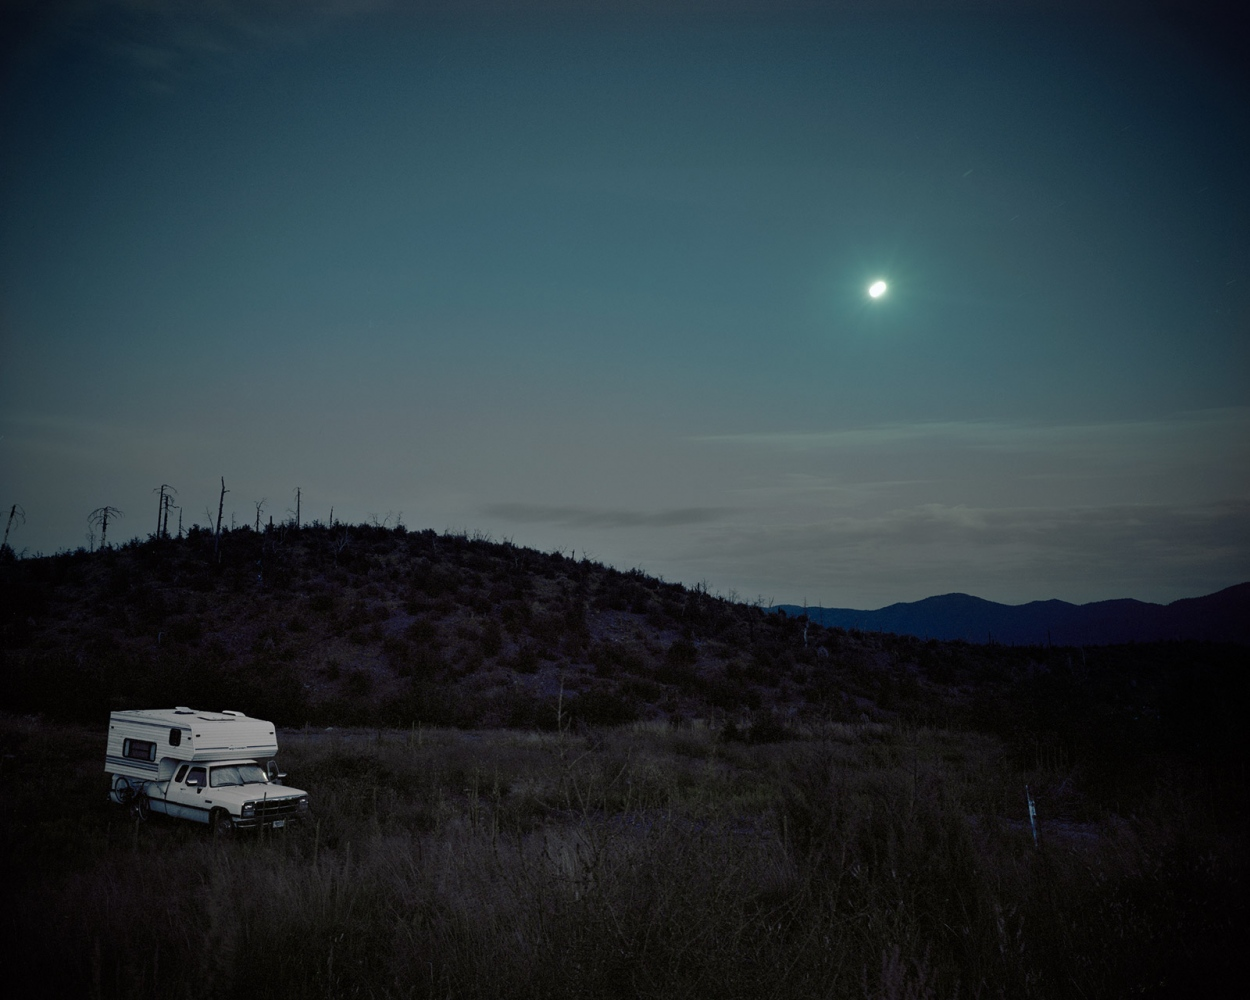 Camper in Moonlight, 2008